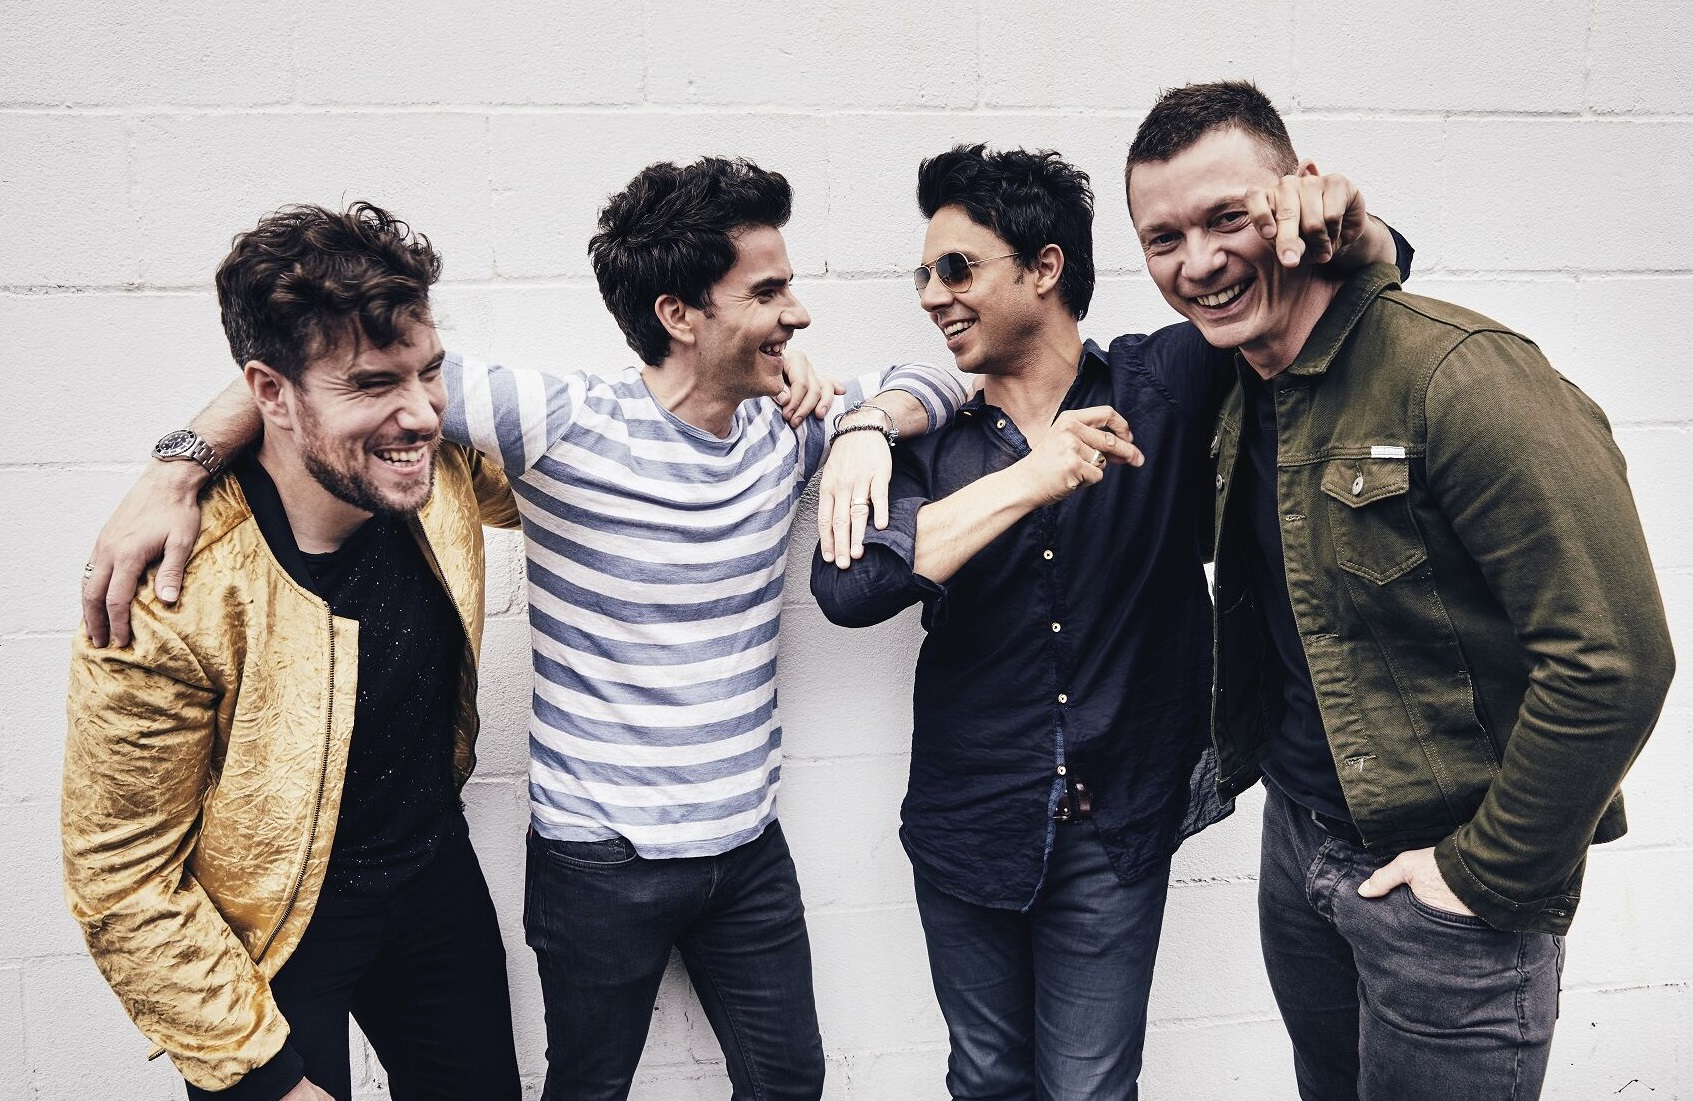 Stereophonics the band stood together laughing